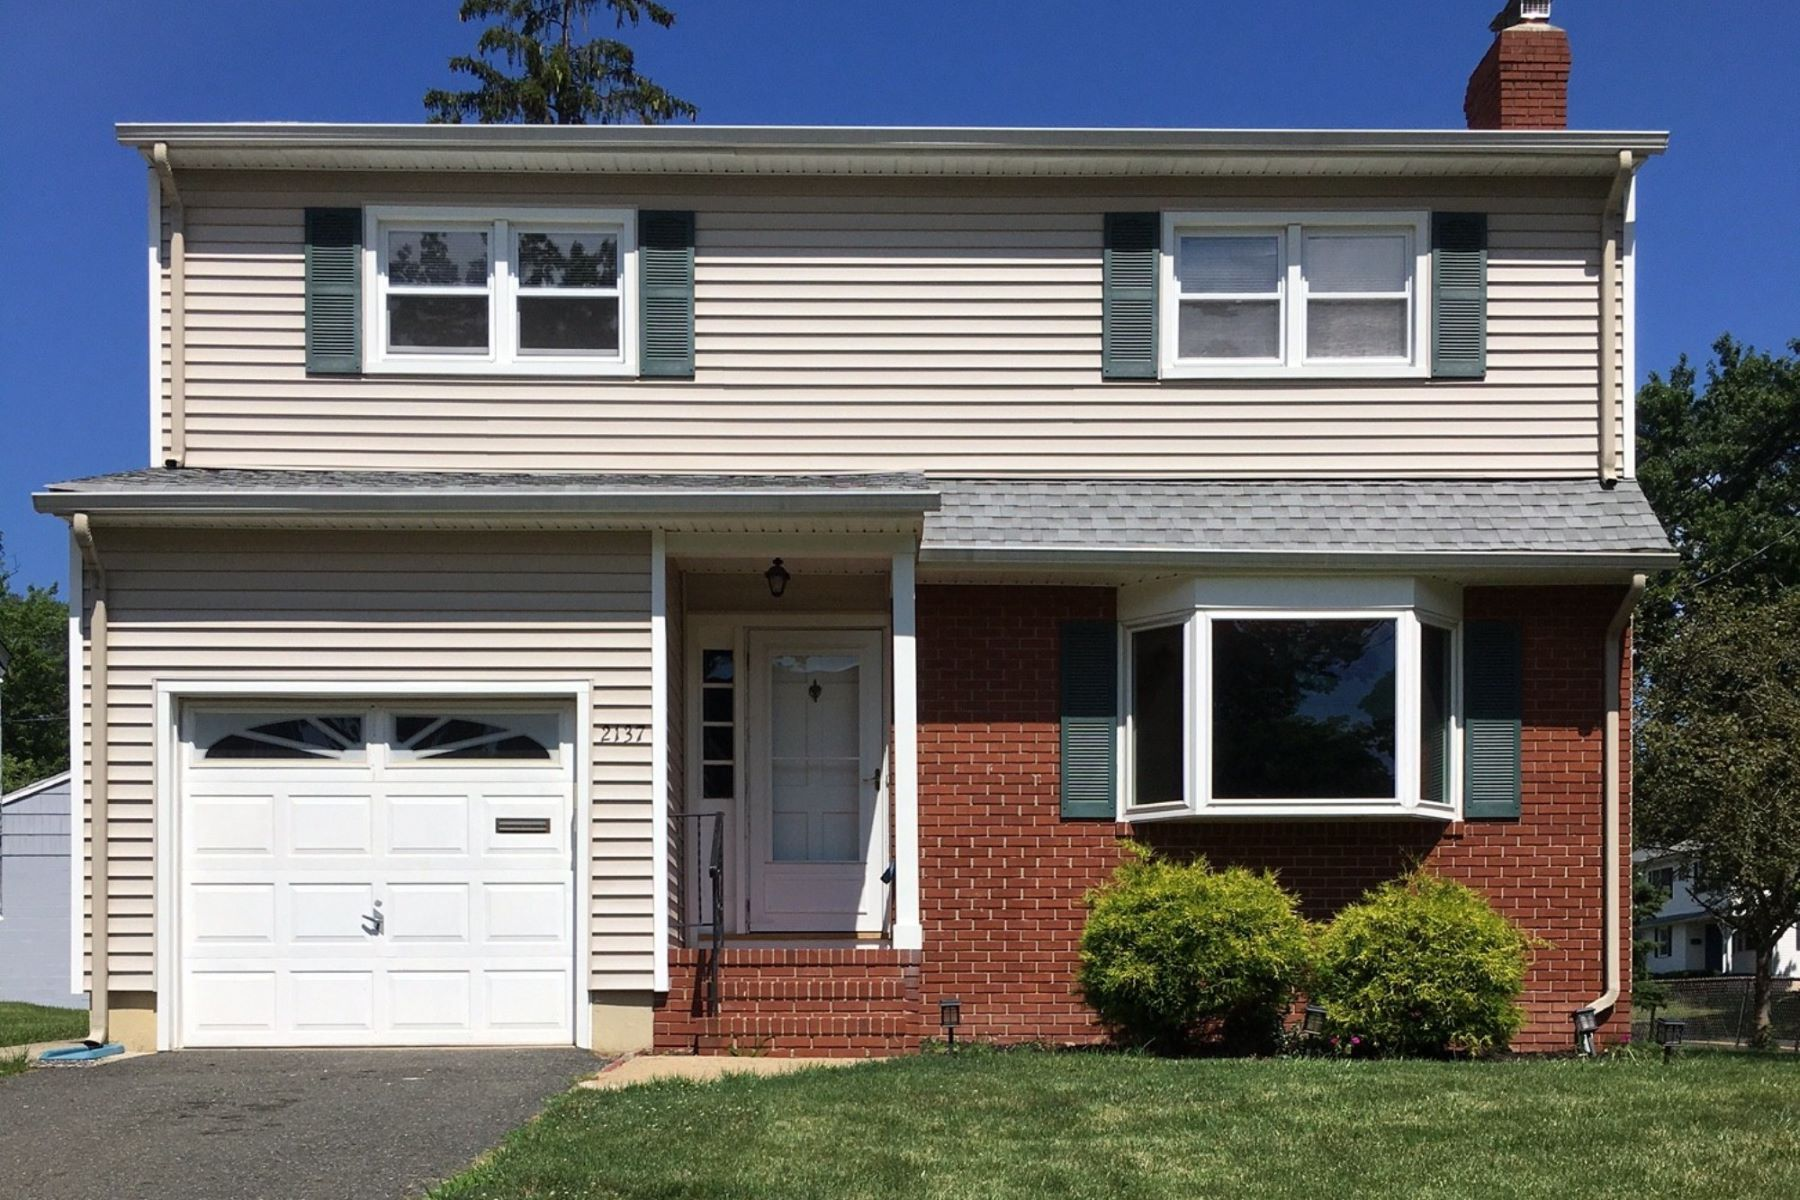 Casa Unifamiliar por un Venta en Sunny Colonial 2137 Maple View Ct Scotch Plains, Nueva Jersey, 07076 Estados Unidos